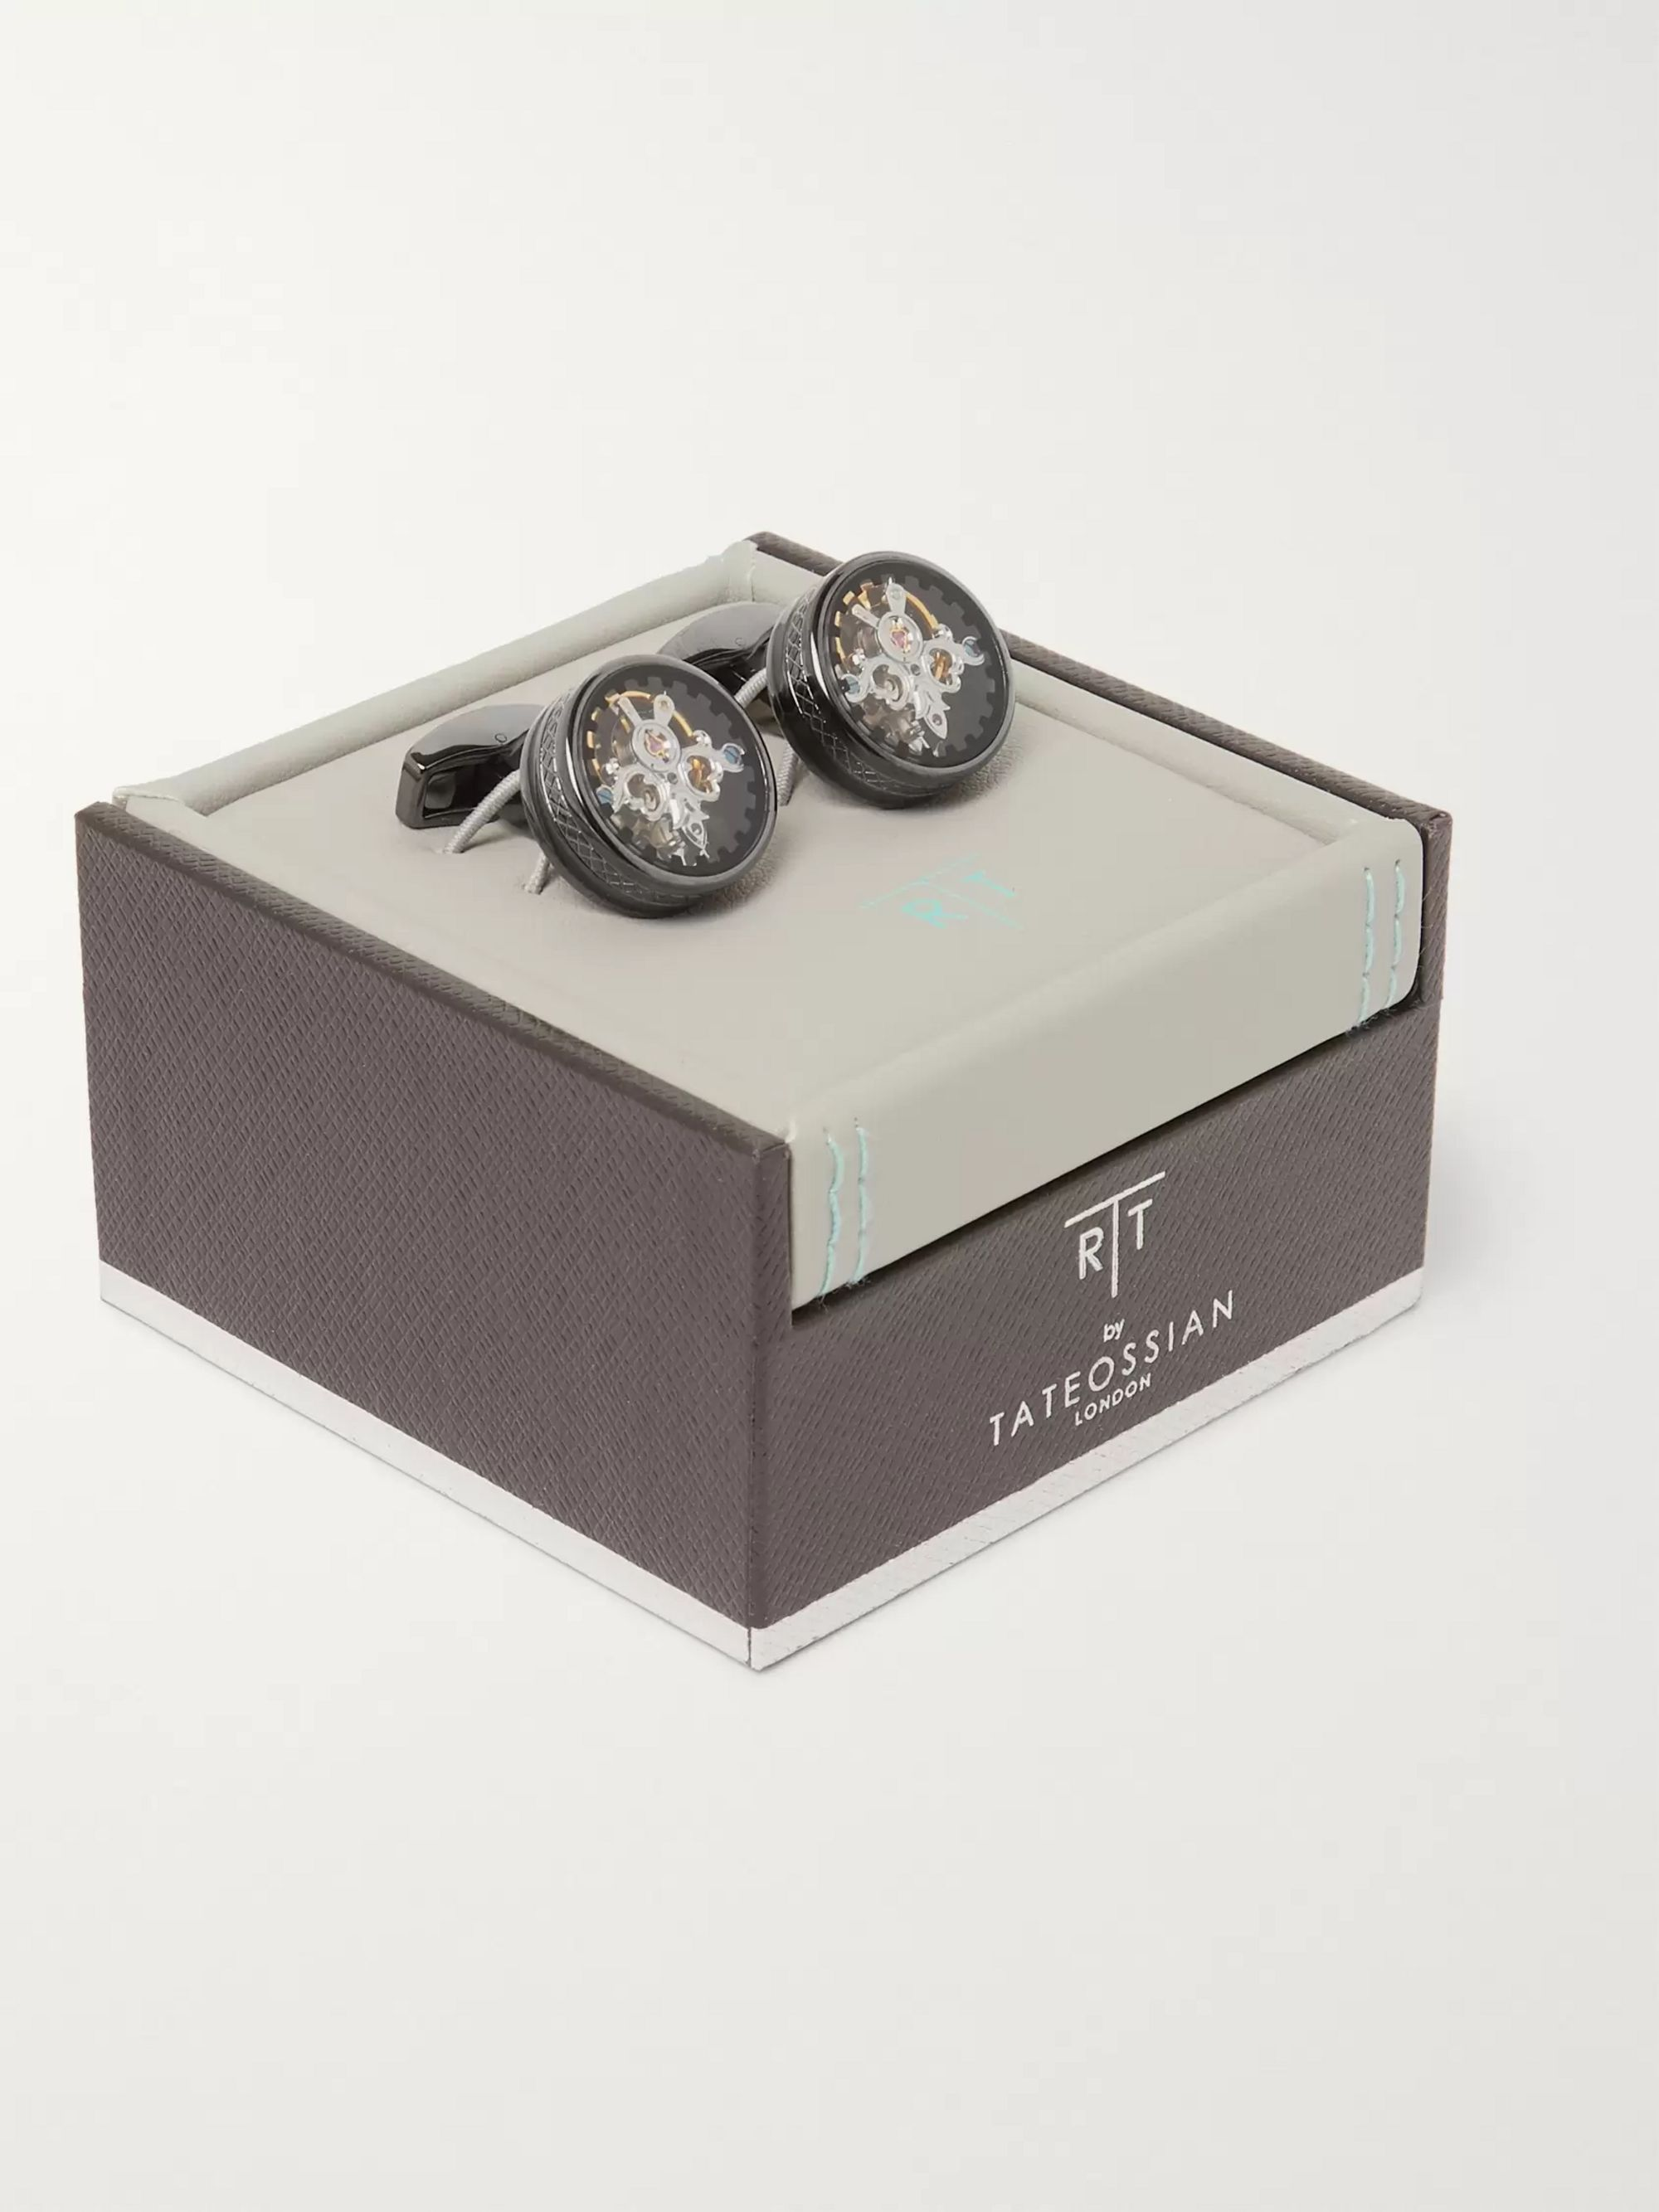 TATEOSSIAN Tourbillon Gear Gunmetal-Plated Cufflinks